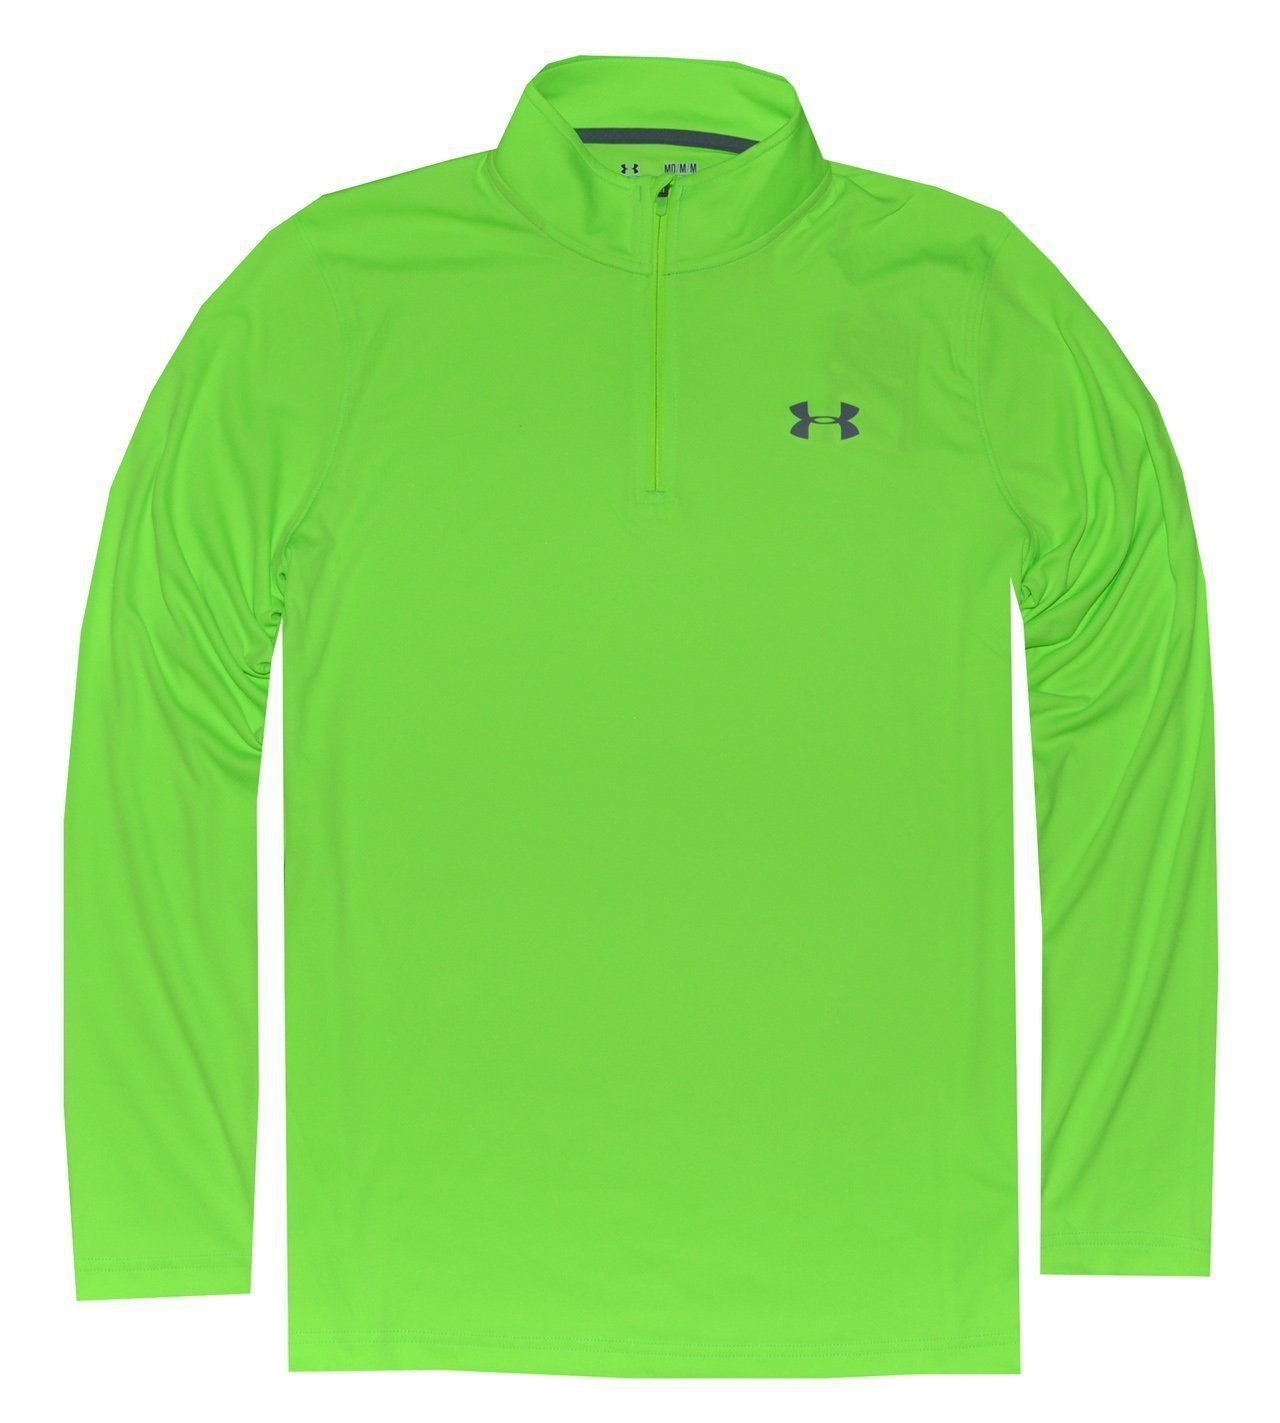 Under Armour All Season Gear 1/4 Zip Hyper Green Golf Pullover Lose Fit Size XL